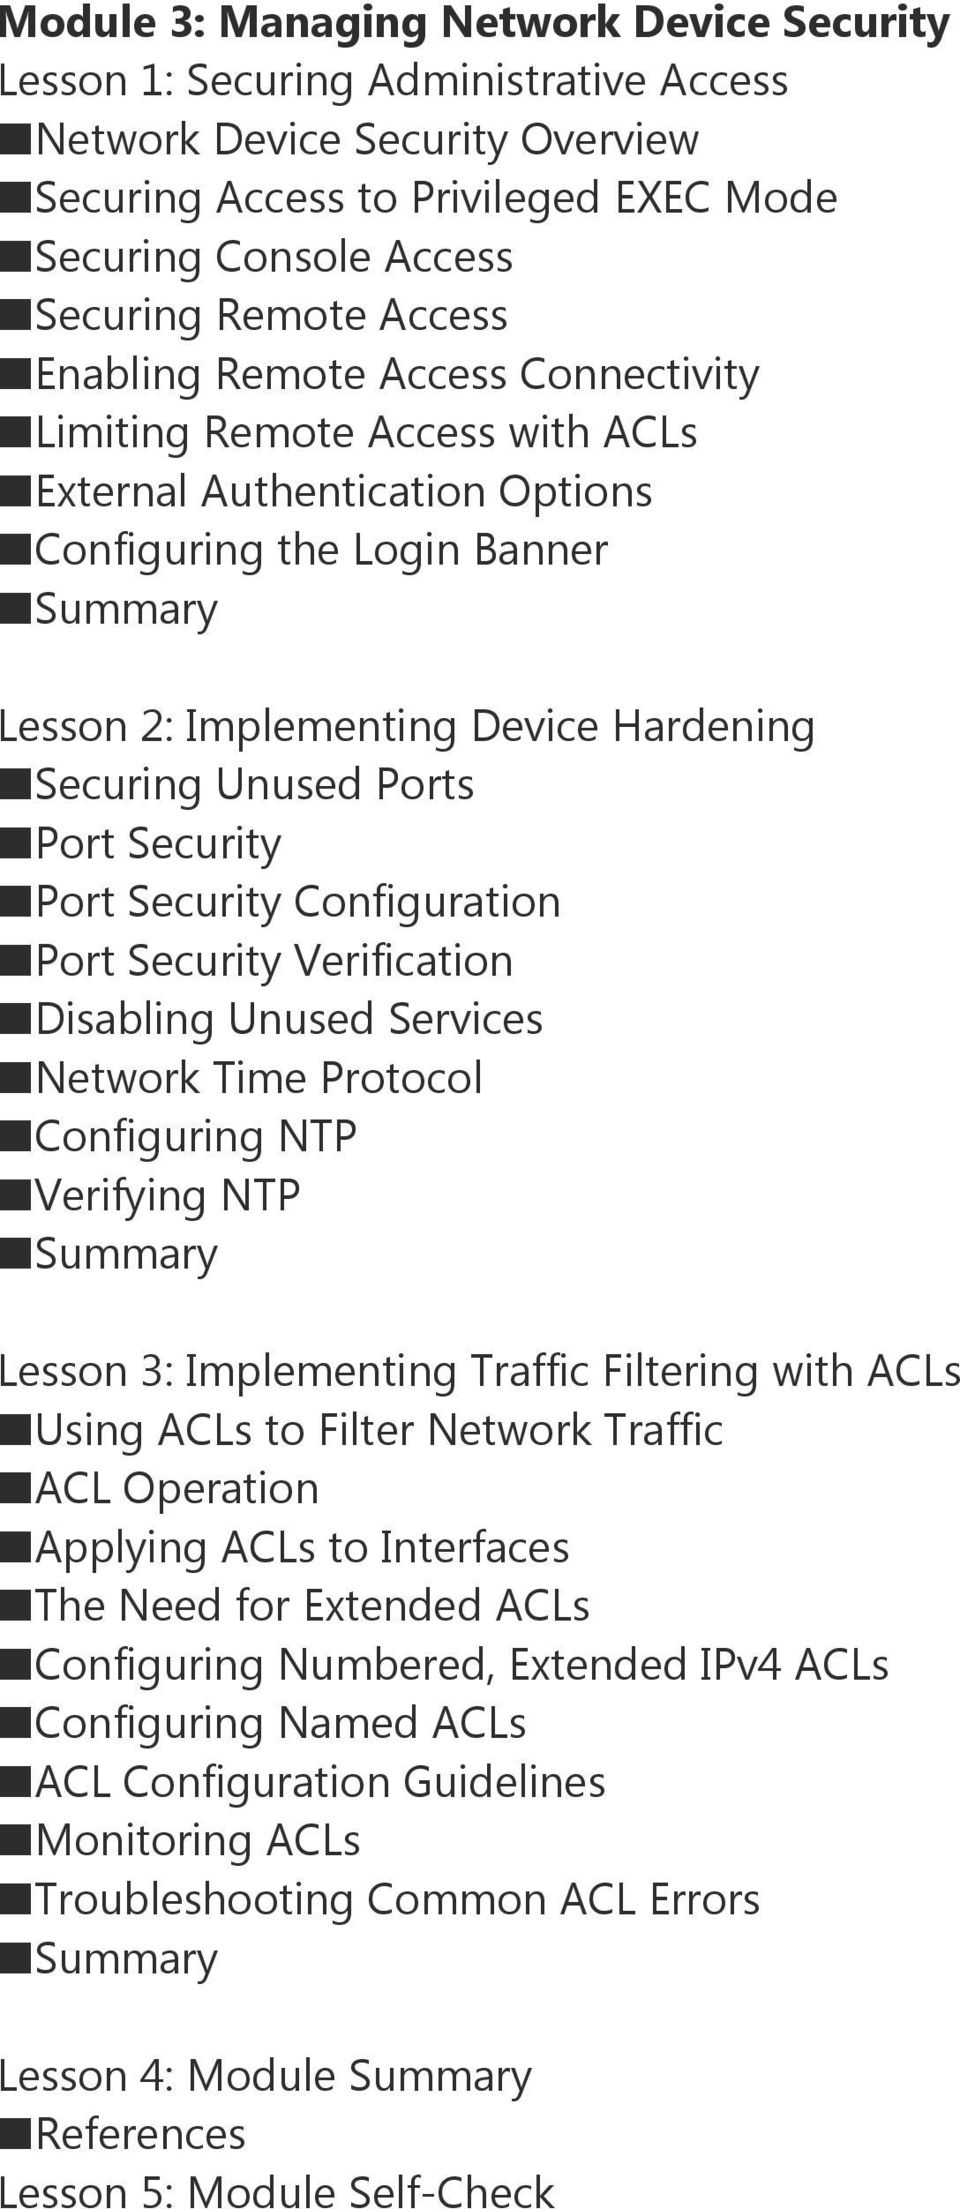 Port Security Port Security Configuration Port Security Verification Disabling Unused Services Network Time Protocol Configuring NTP Verifying NTP Lesson 3: Implementing Traffic Filtering with ACLs